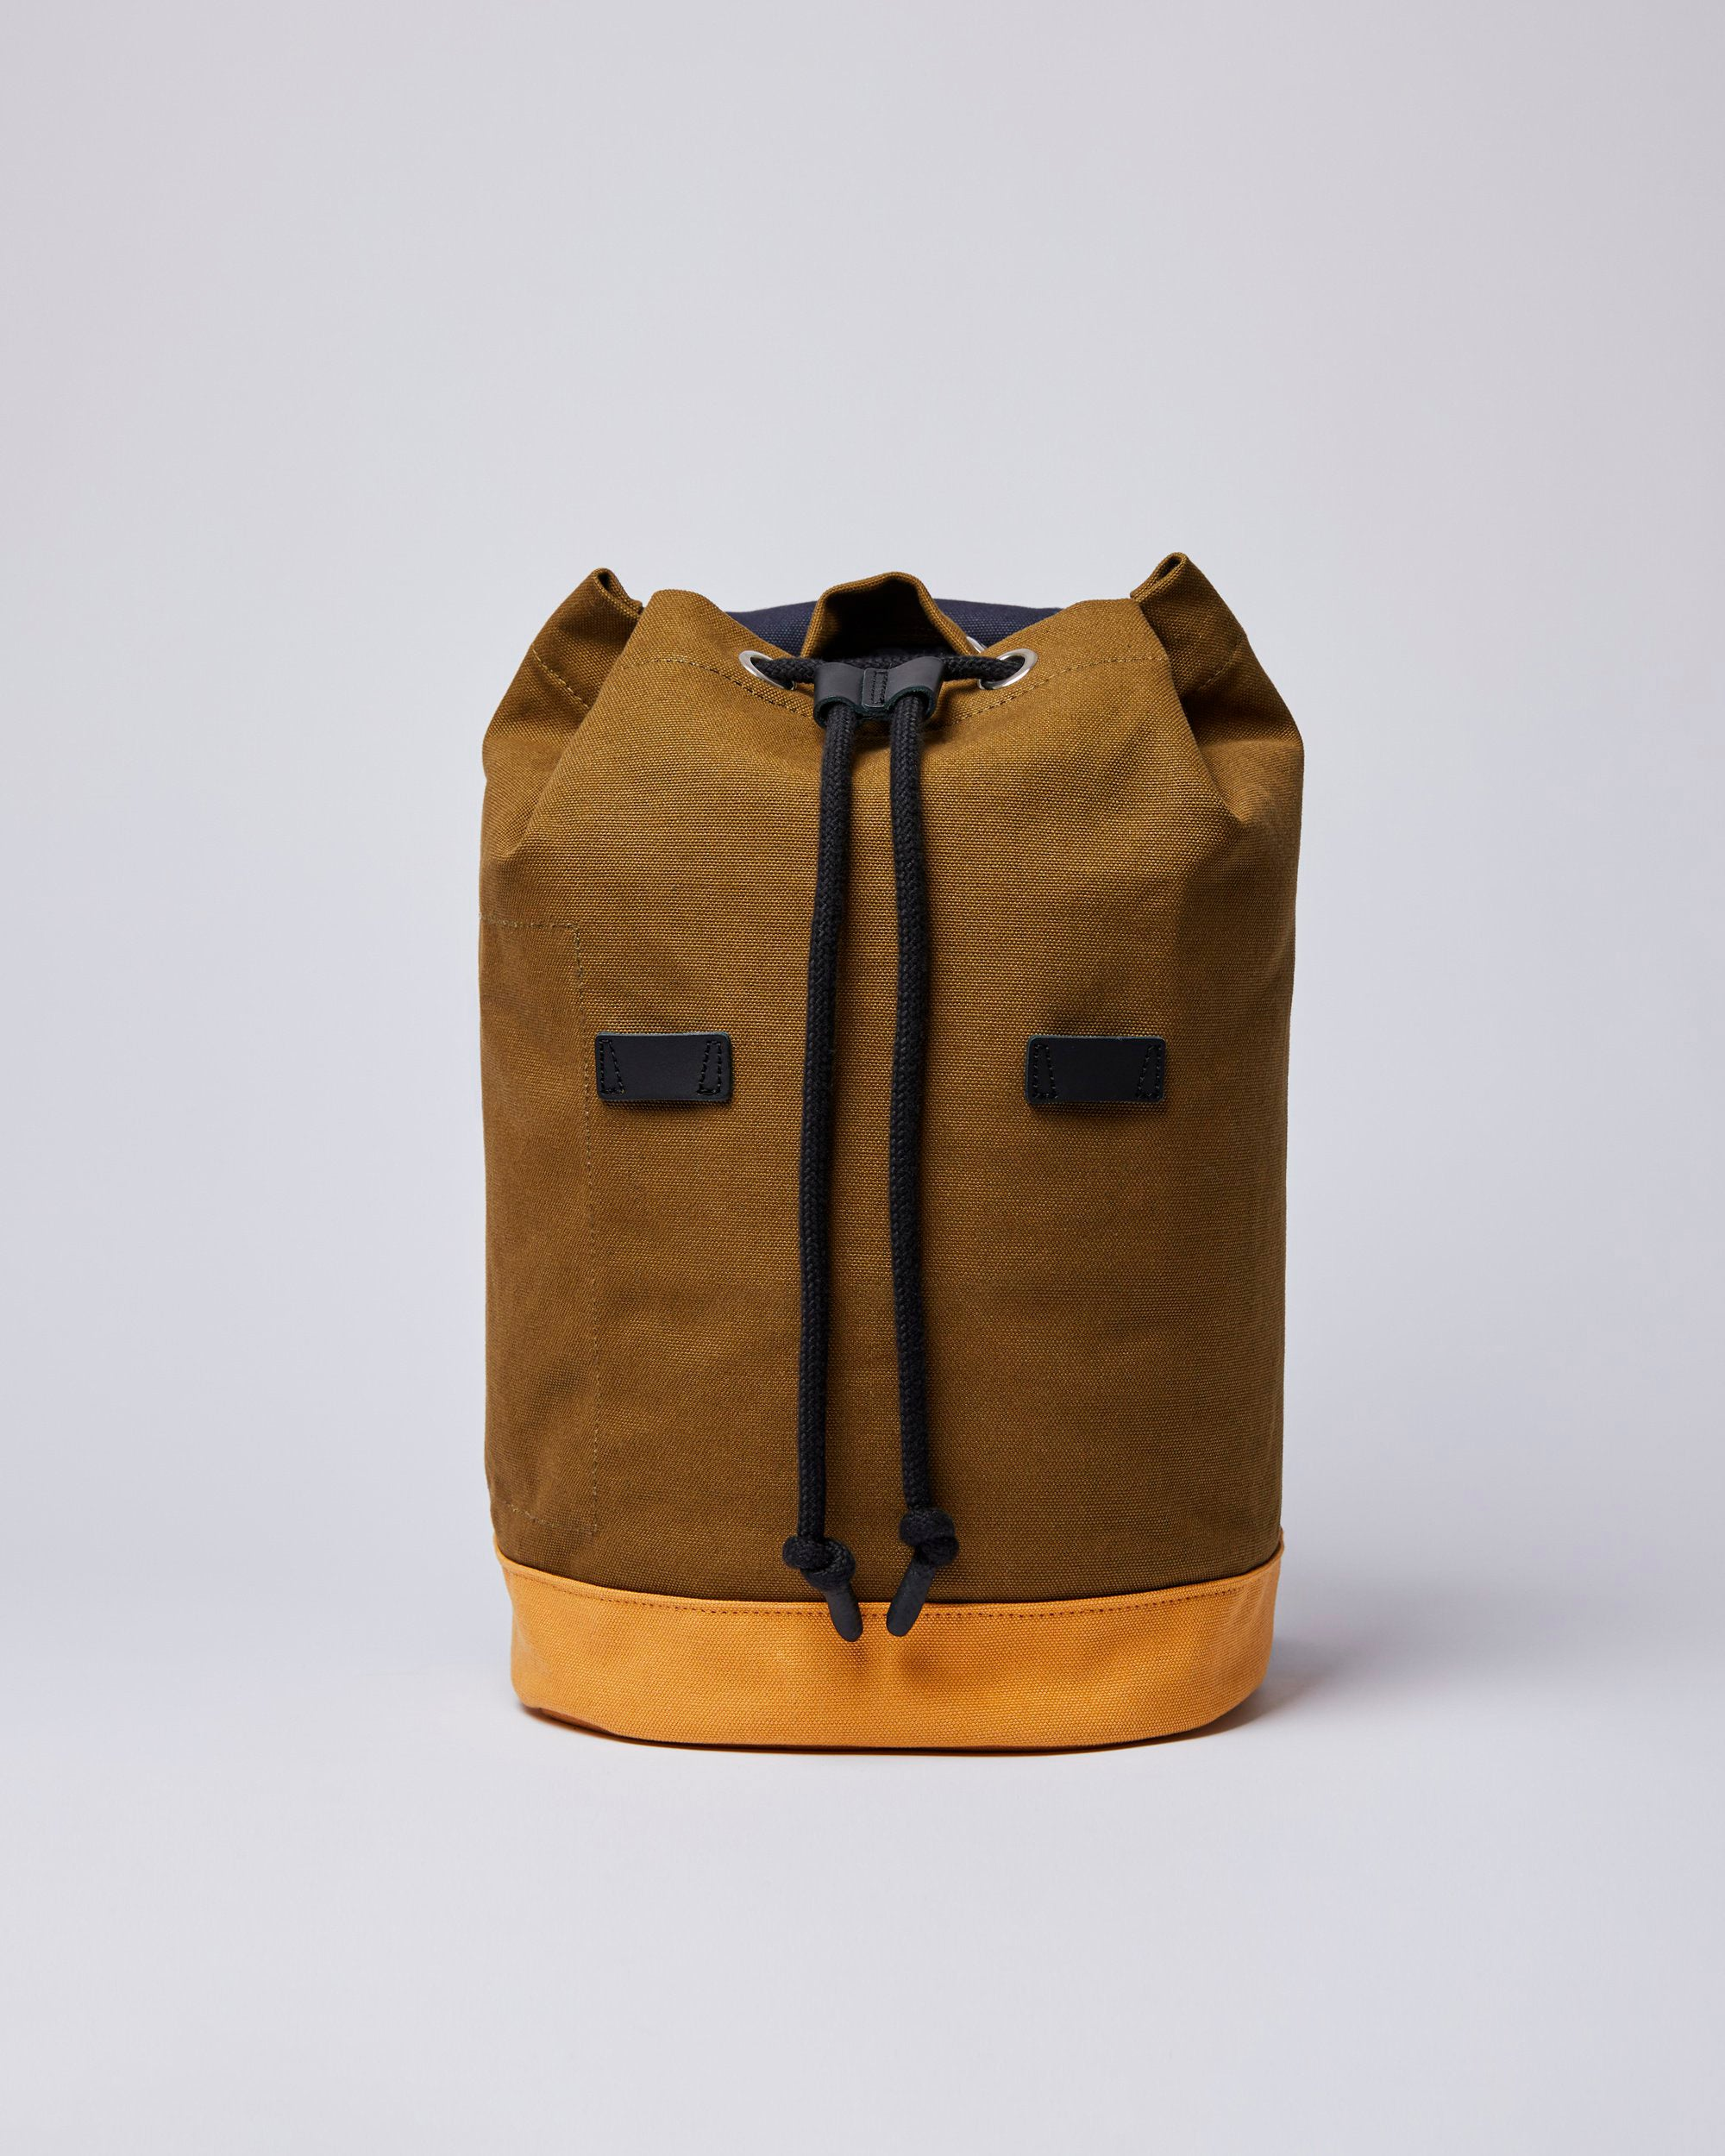 Stig Rucksack Multi Navy/Dark Olive/Honey Black Leather